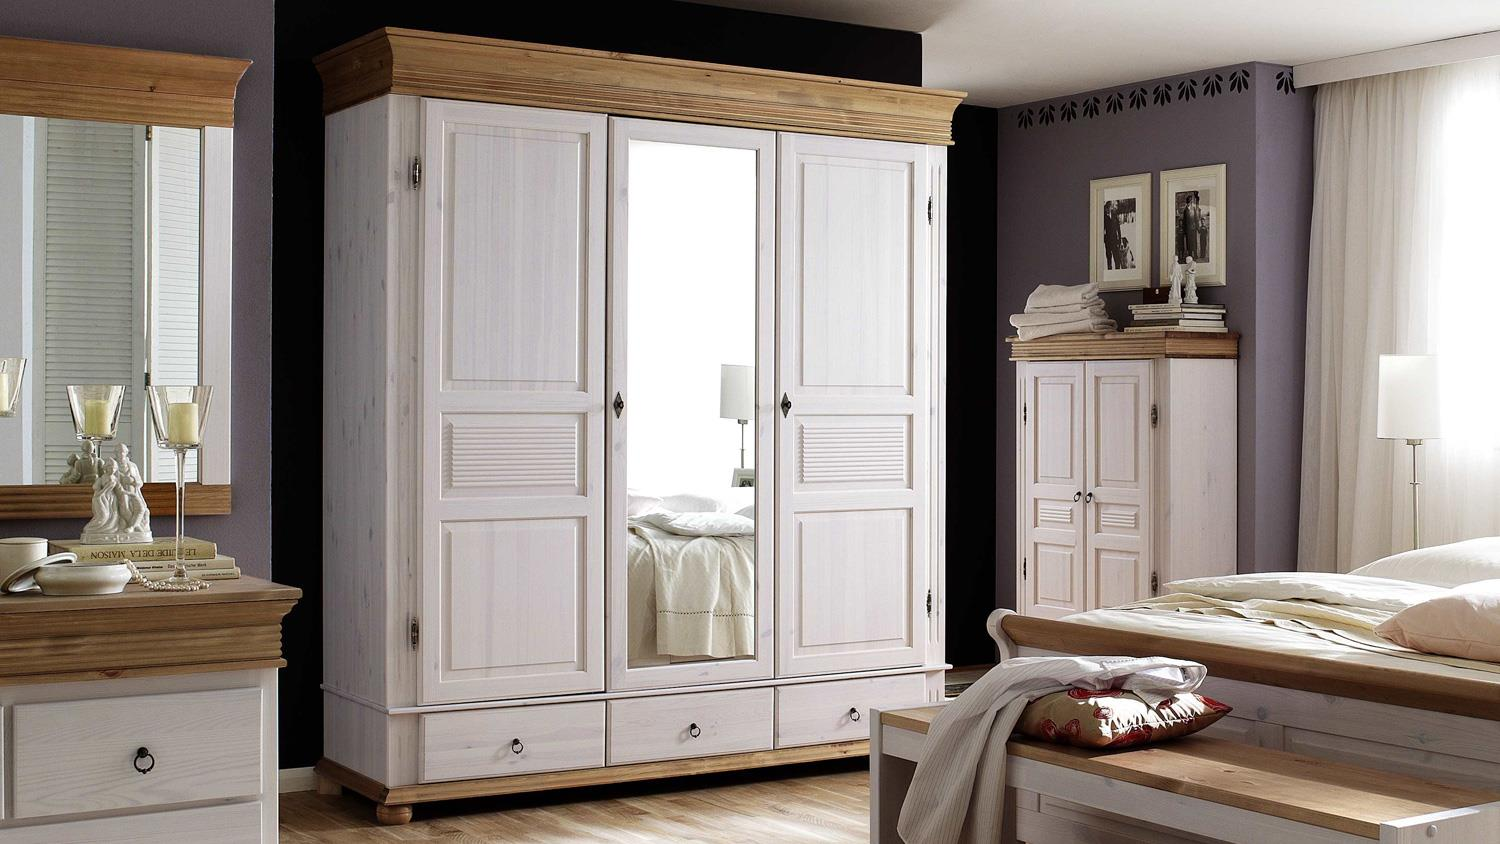 kleiderschrank oslo kiefer massiv wei antik 3 trg mit spiegel. Black Bedroom Furniture Sets. Home Design Ideas